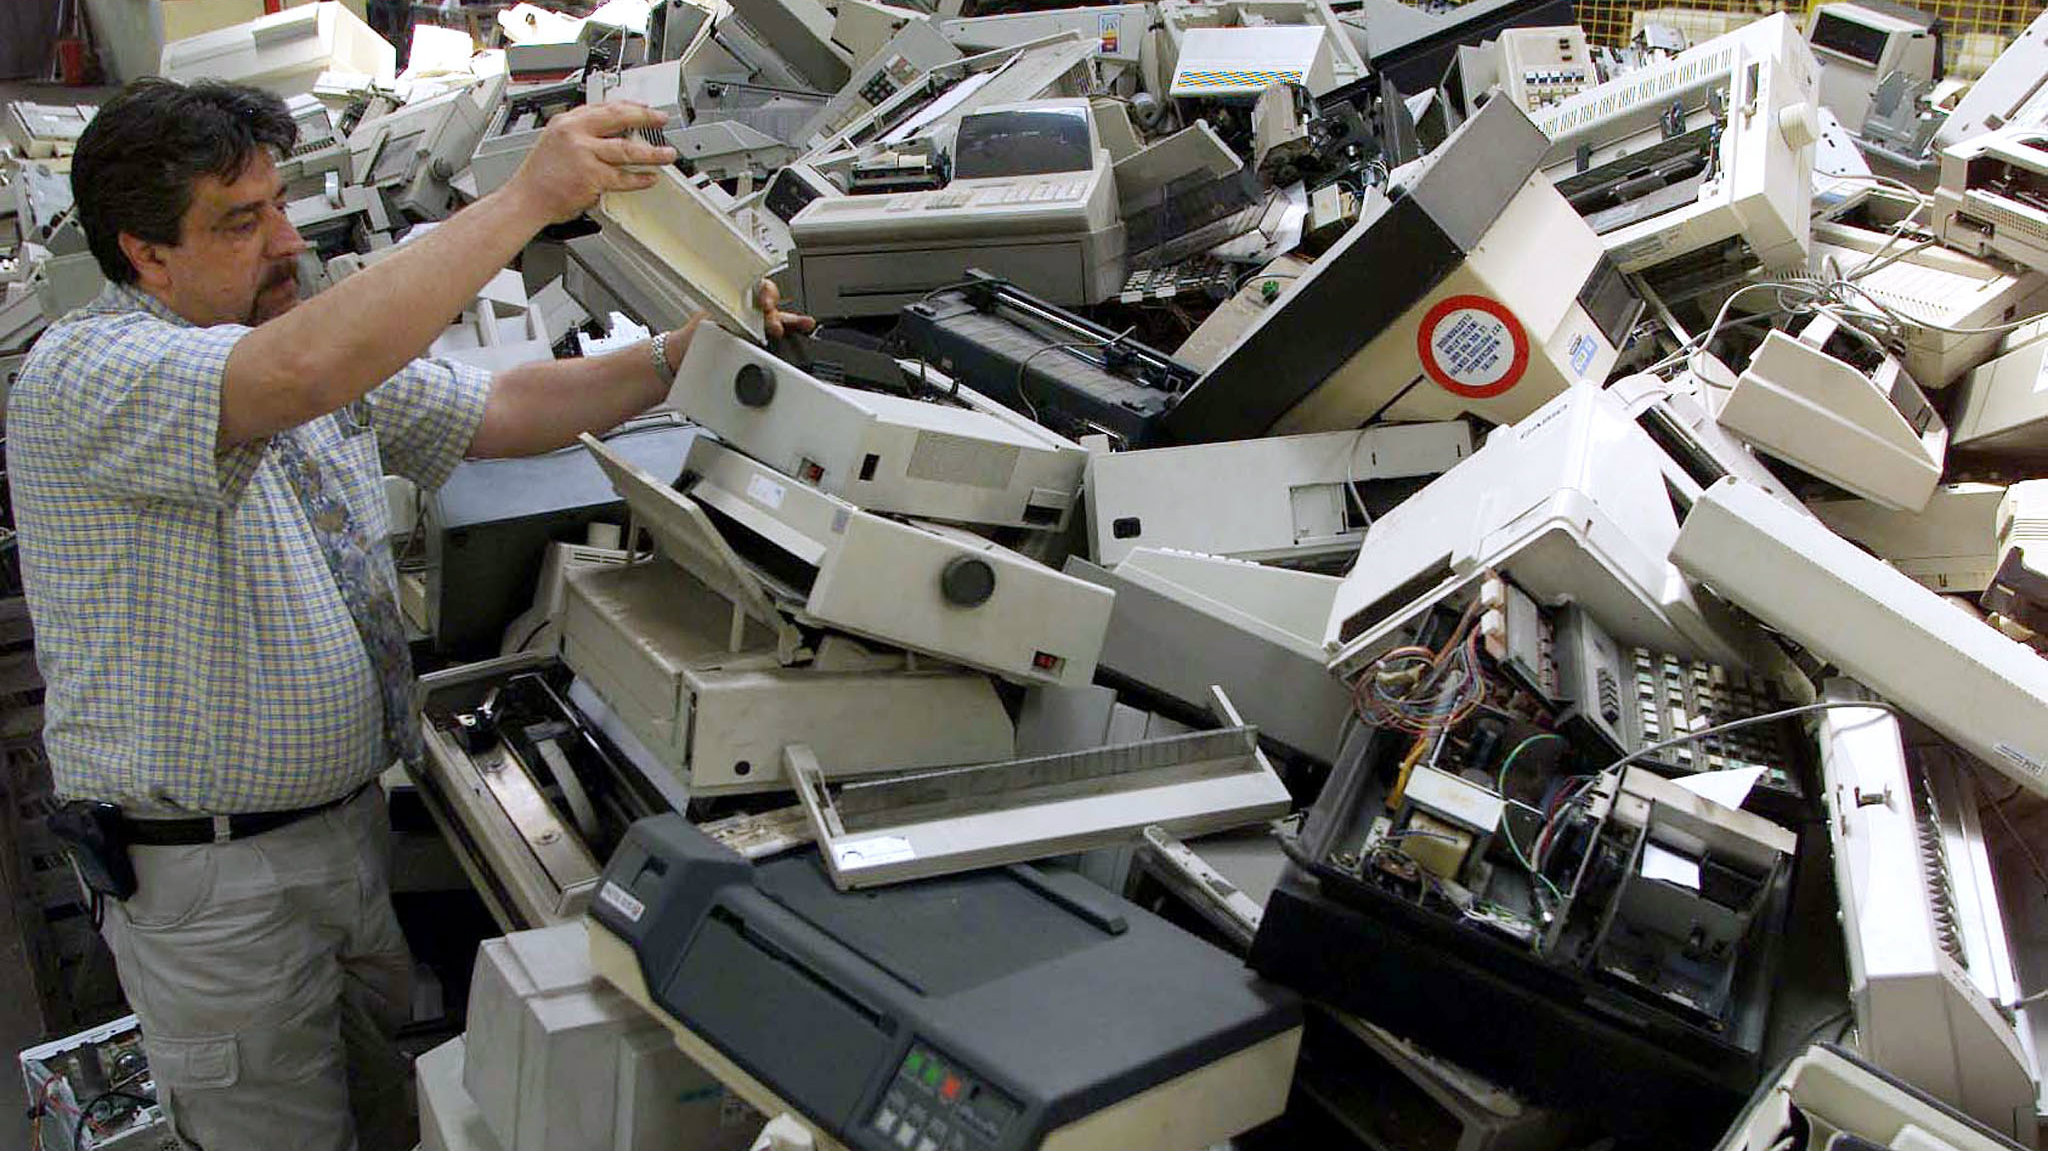 Patrick Maranon sorts through computer printers and fax machines at his Ecomicro recycling company in Bordeaux, June 11, 2001. Ecomicro claims to be the only company in France which yearly separates some 1500 tonnes of obsolete or unuseable computers into separate components for recycling.